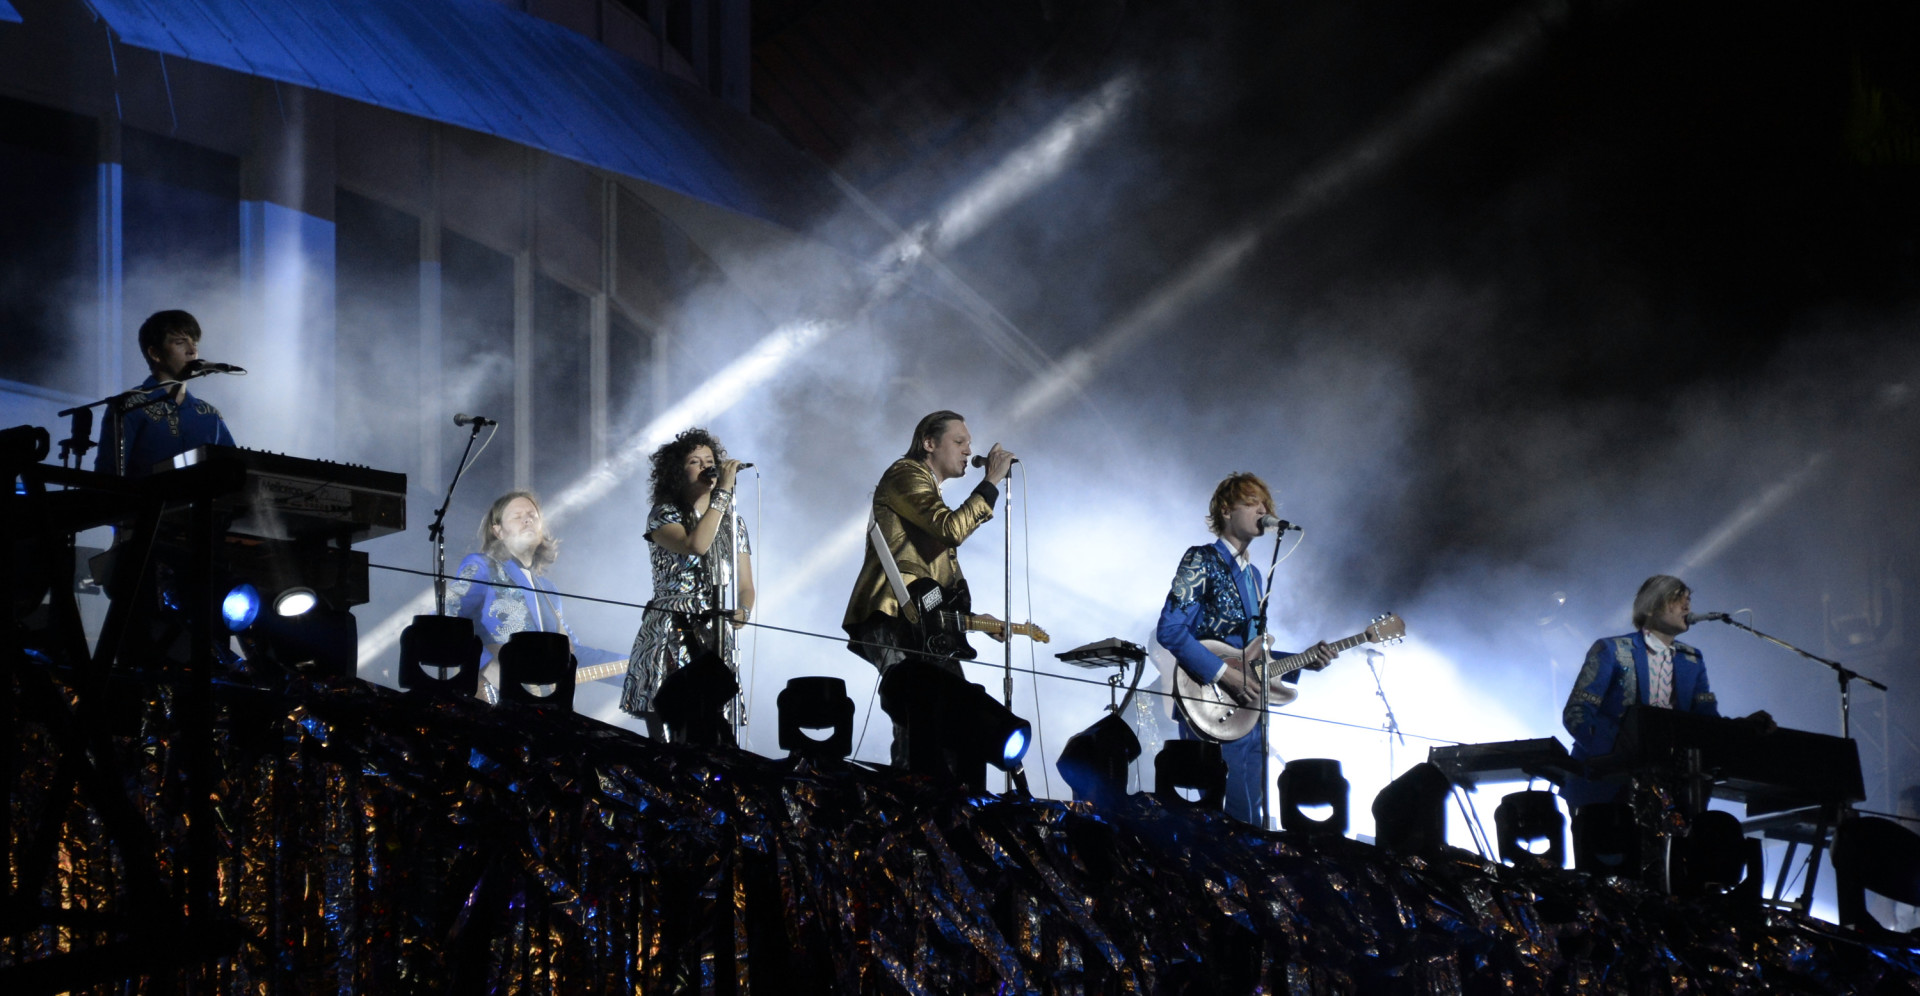 Indie rock band Arcade Fire performs at the Capitol Records building in Hollywood